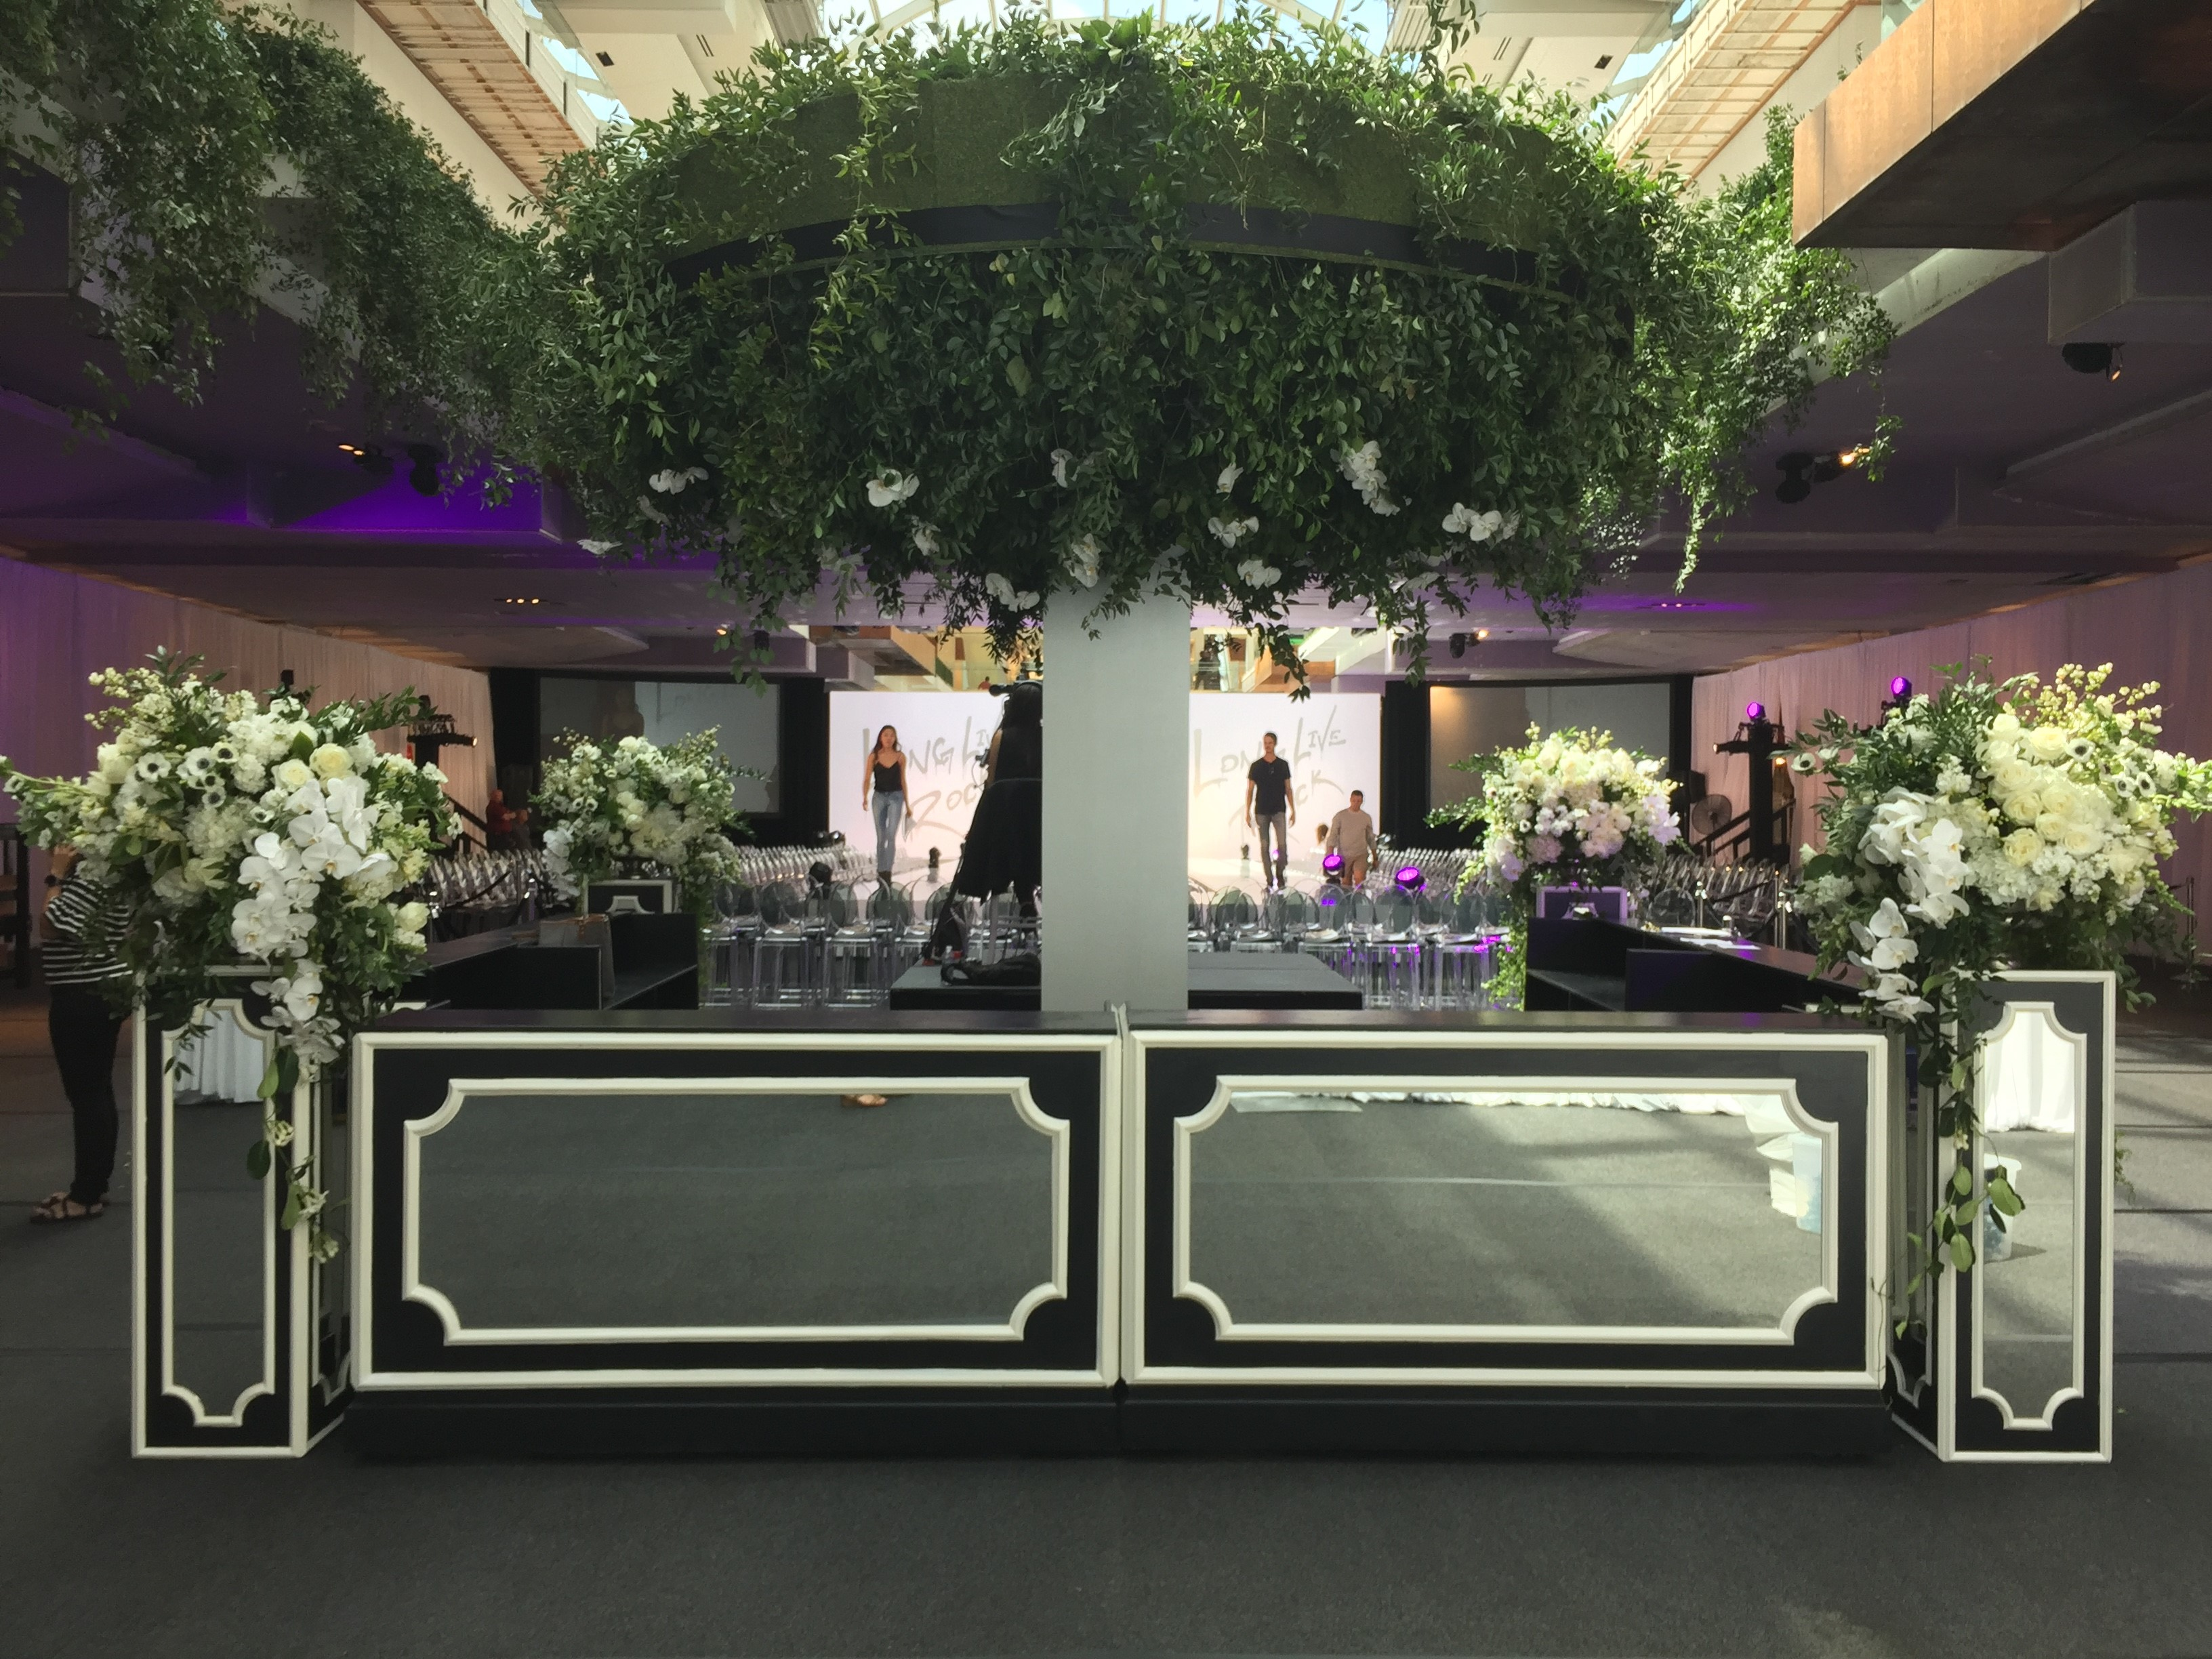 The LUXE Show (Simon Galleria) - LIVE! Event Design